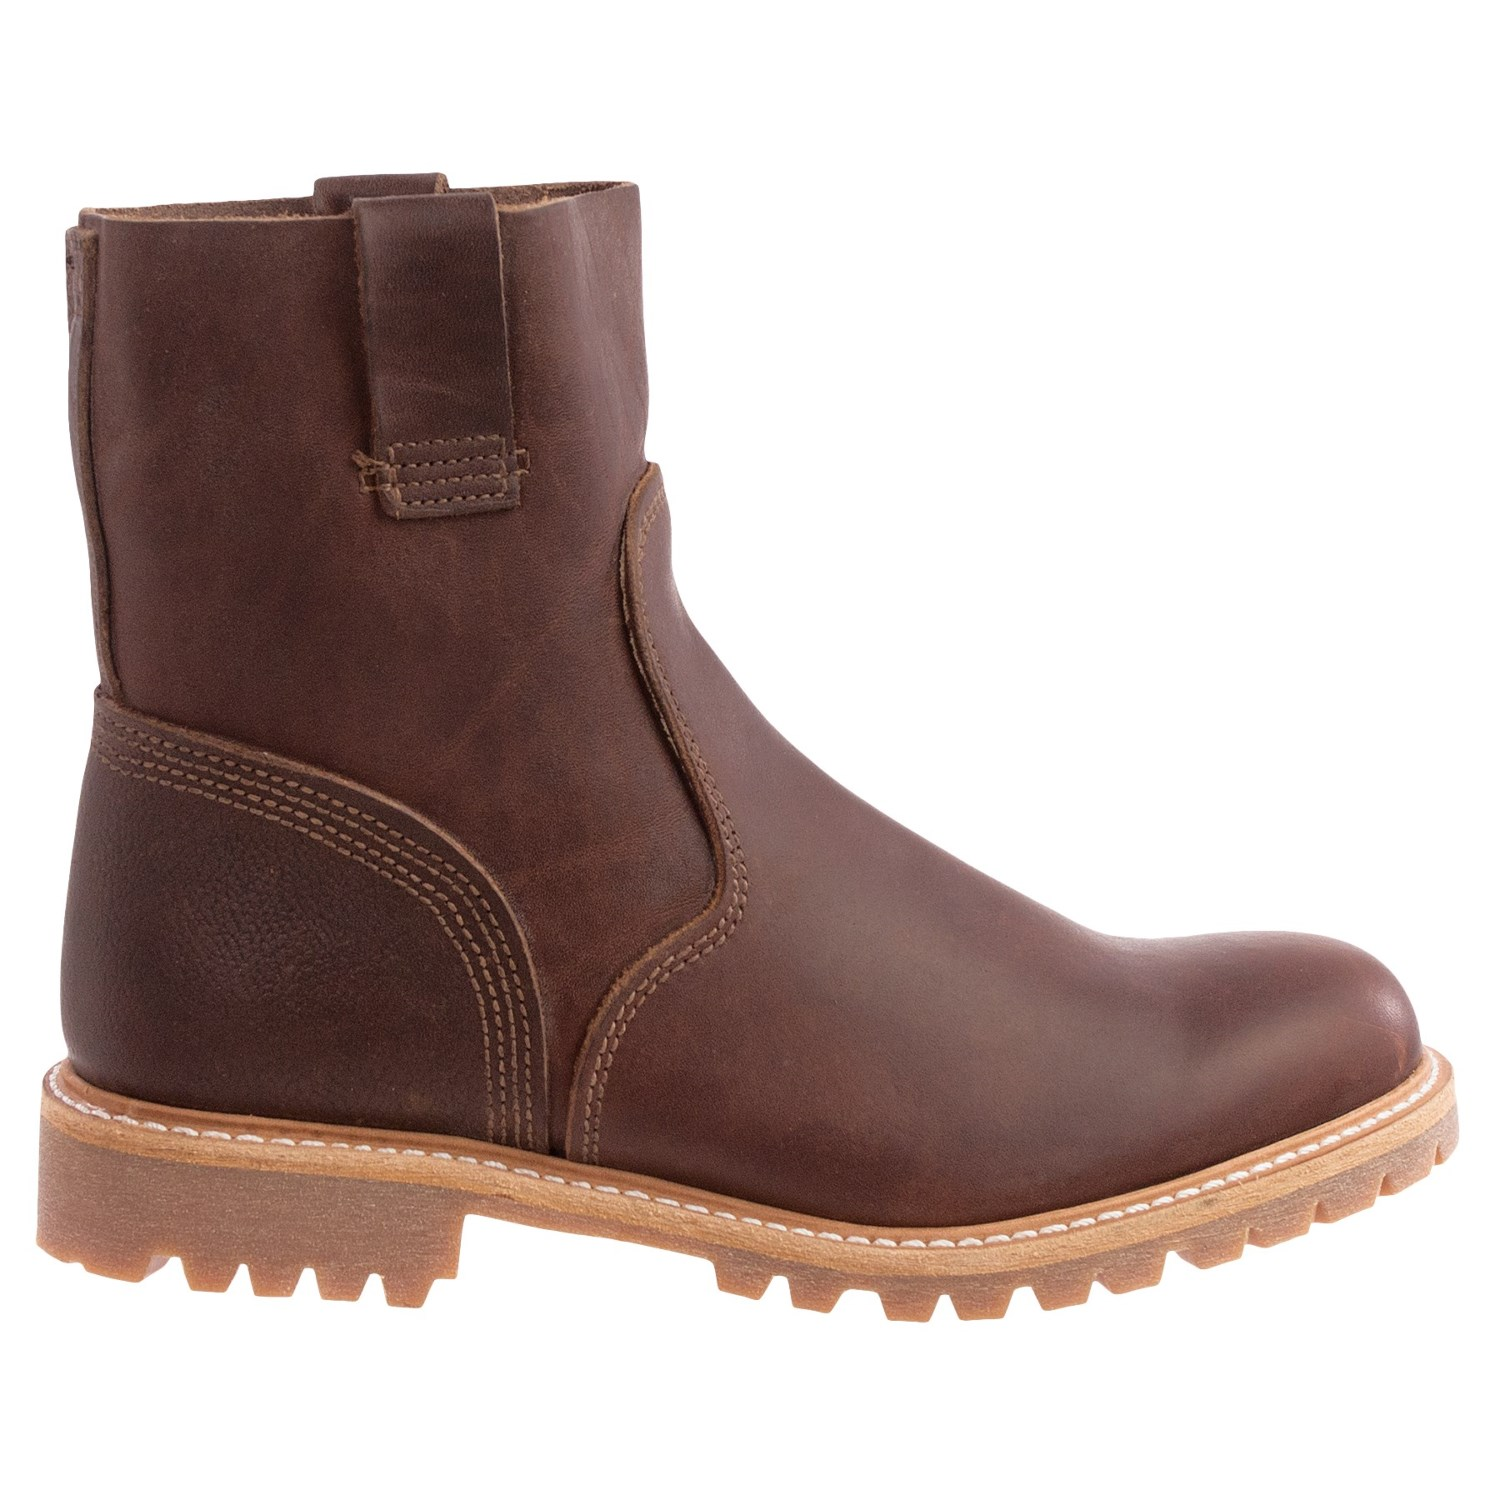 timberland pull on boots mens - Angel Companions